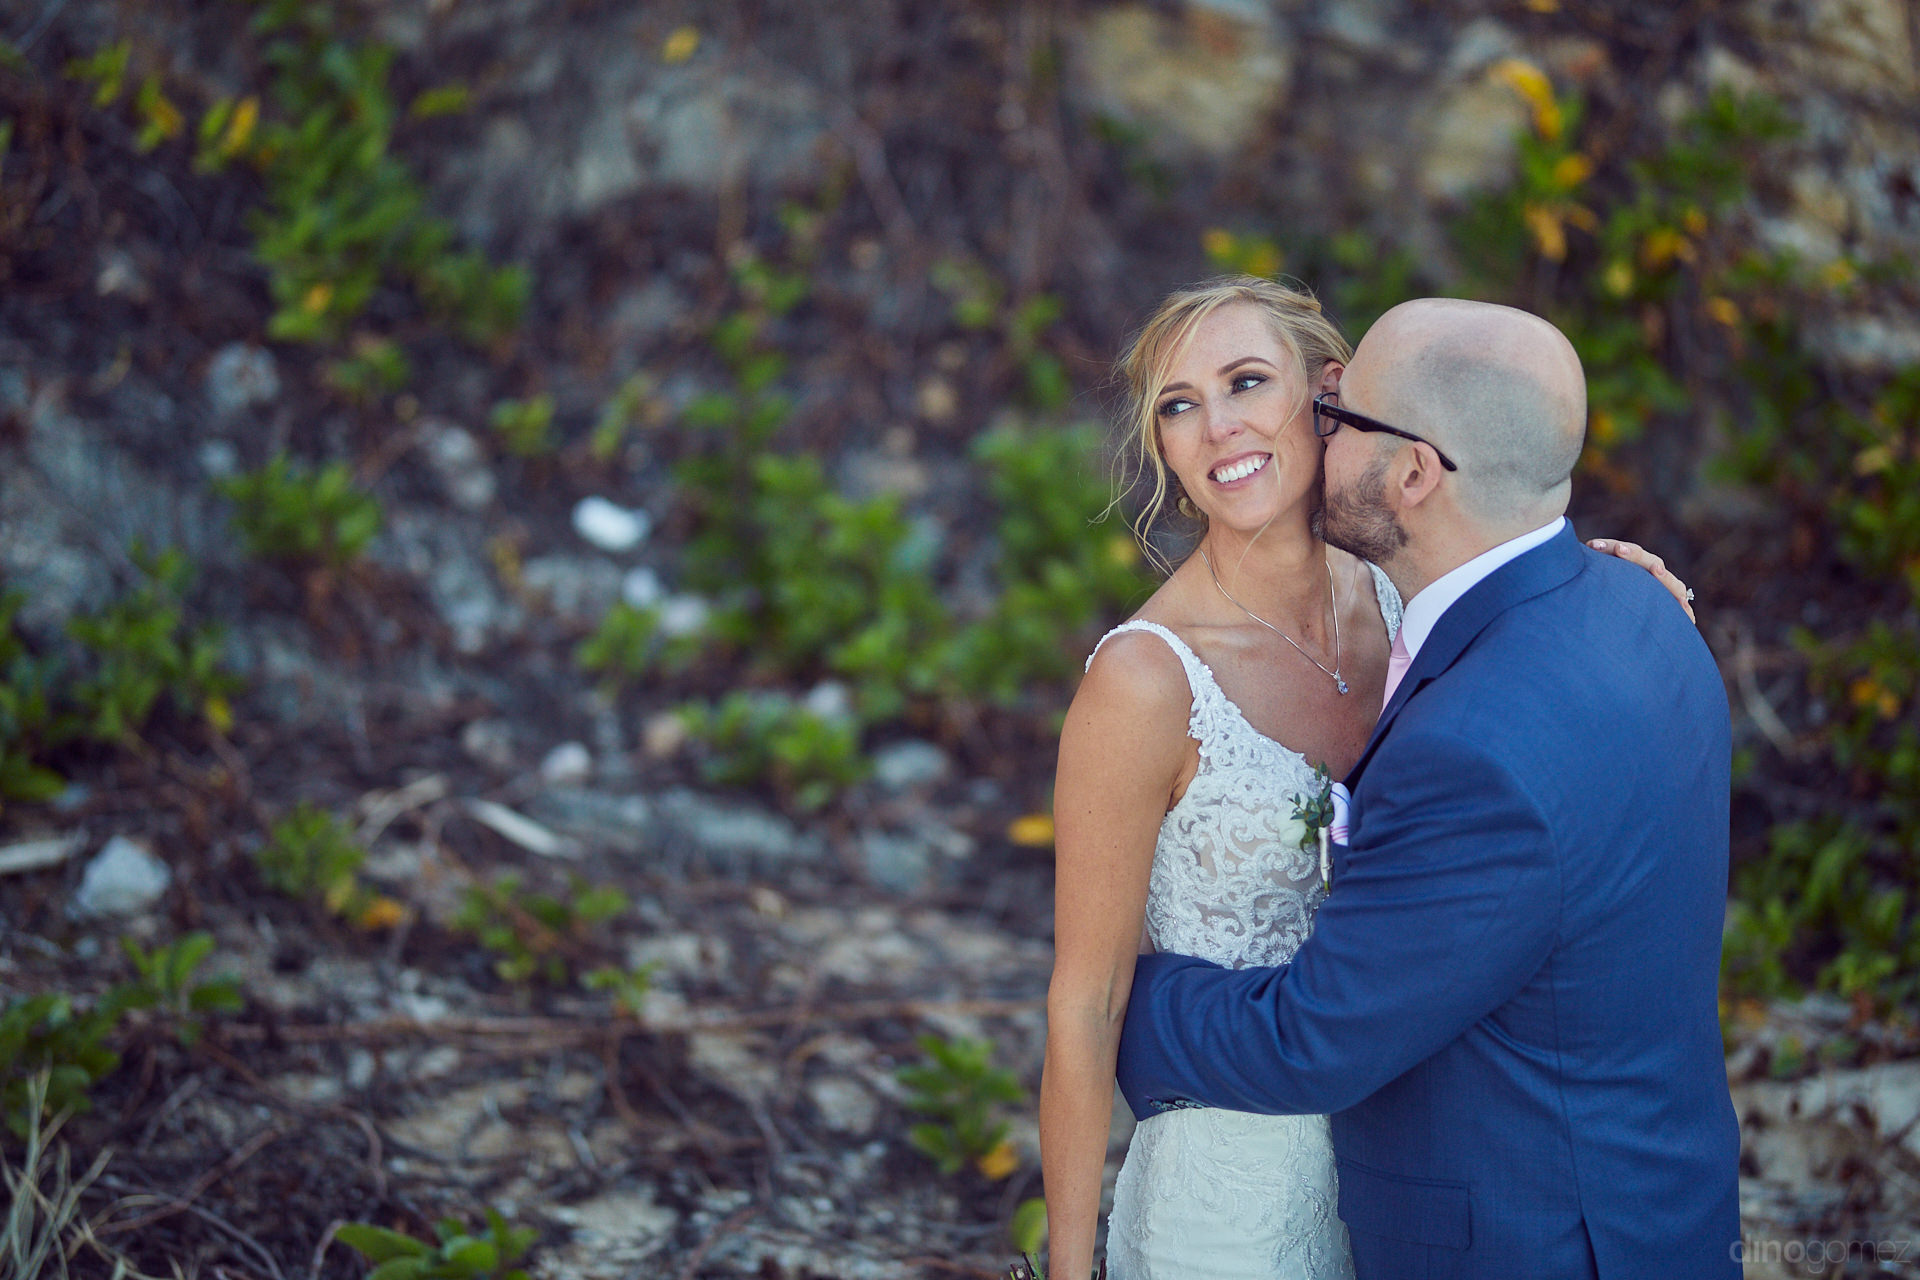 Wedding Photographer In Cabo Had An Incredible Moment In This Photo - Mm